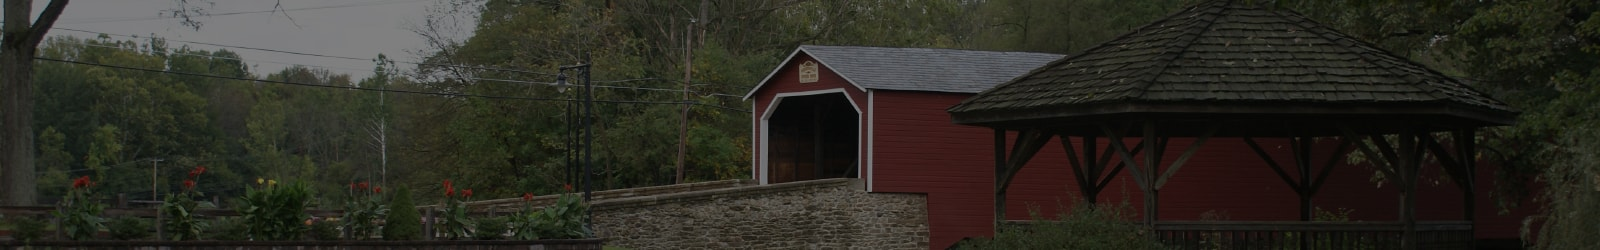 Biannual Kreidersville Covered Bridge Festival